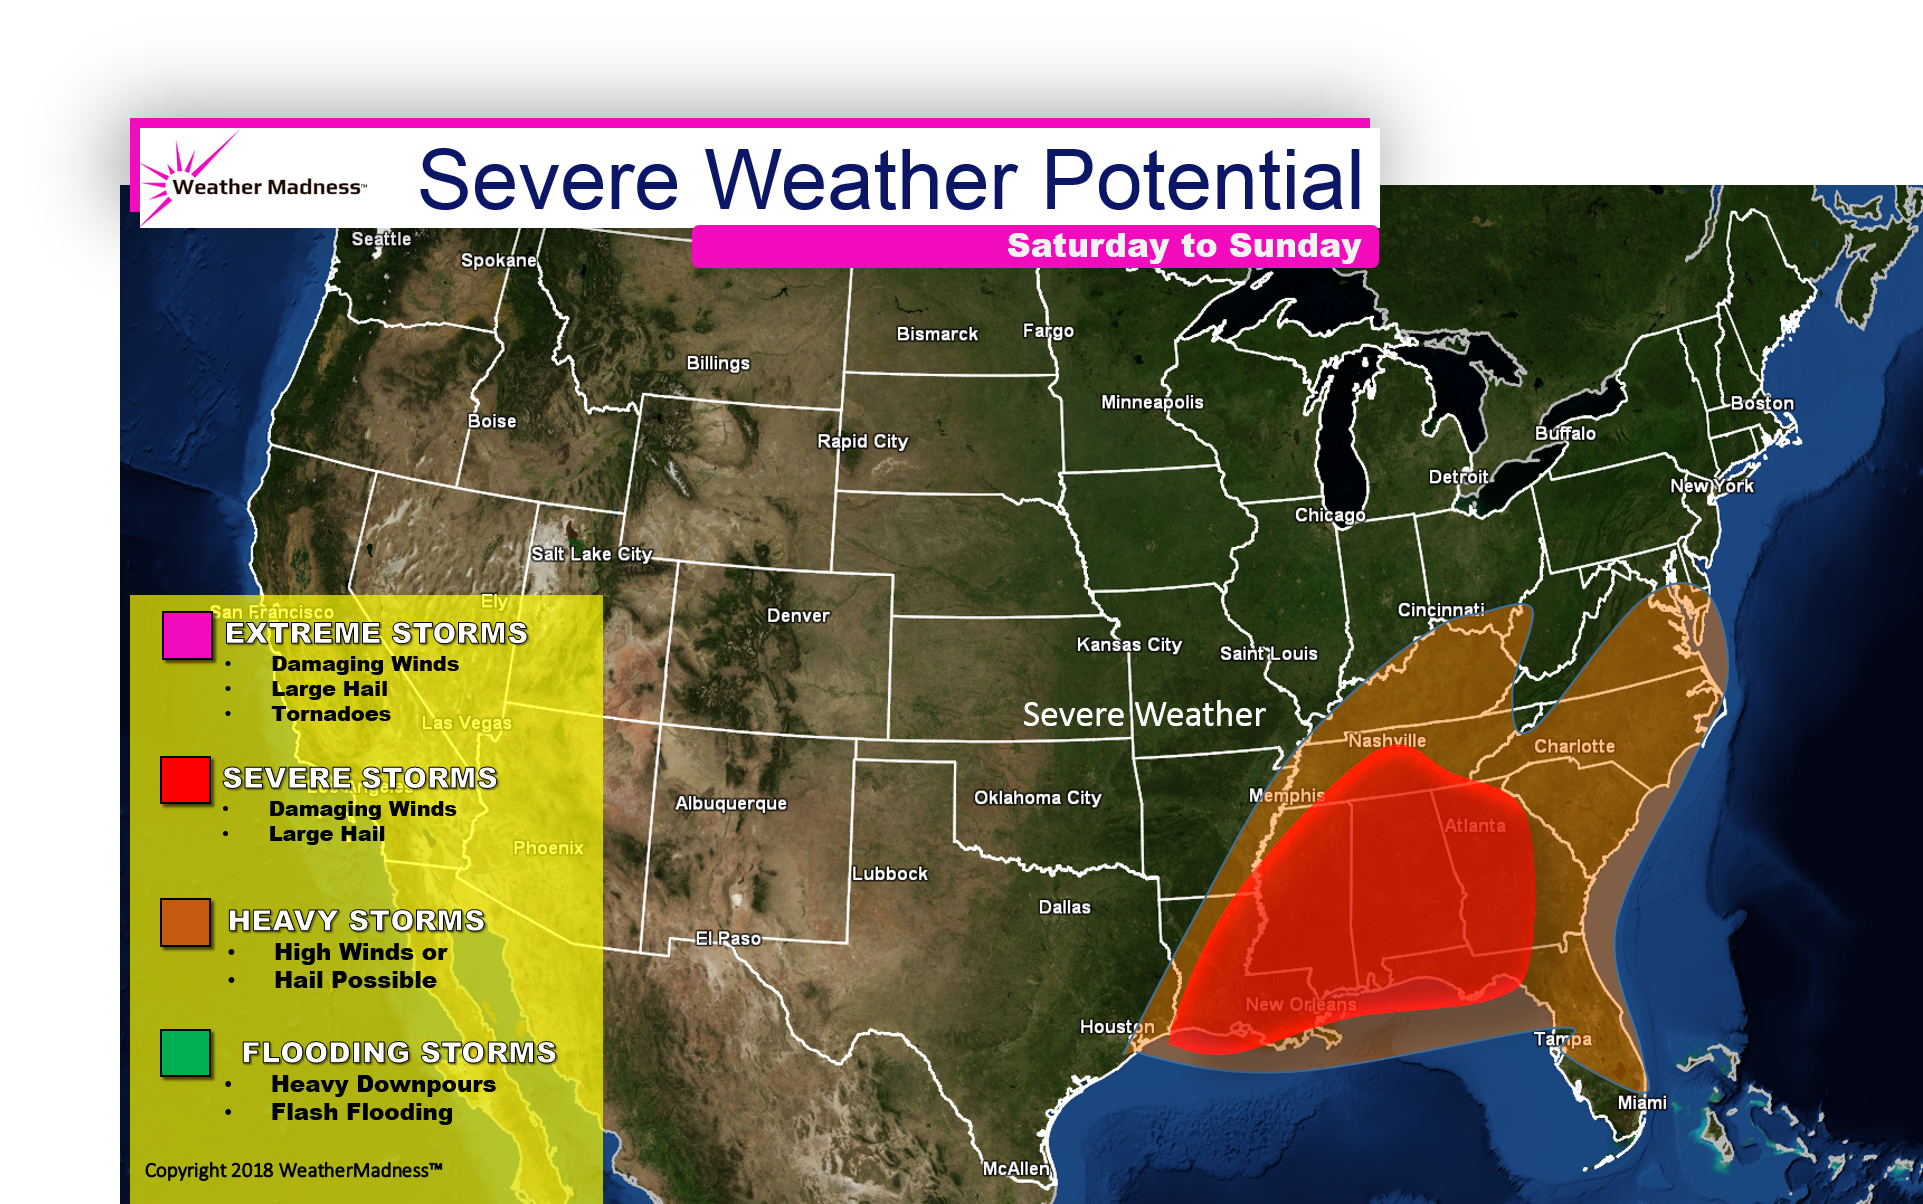 Severe Weather Potential